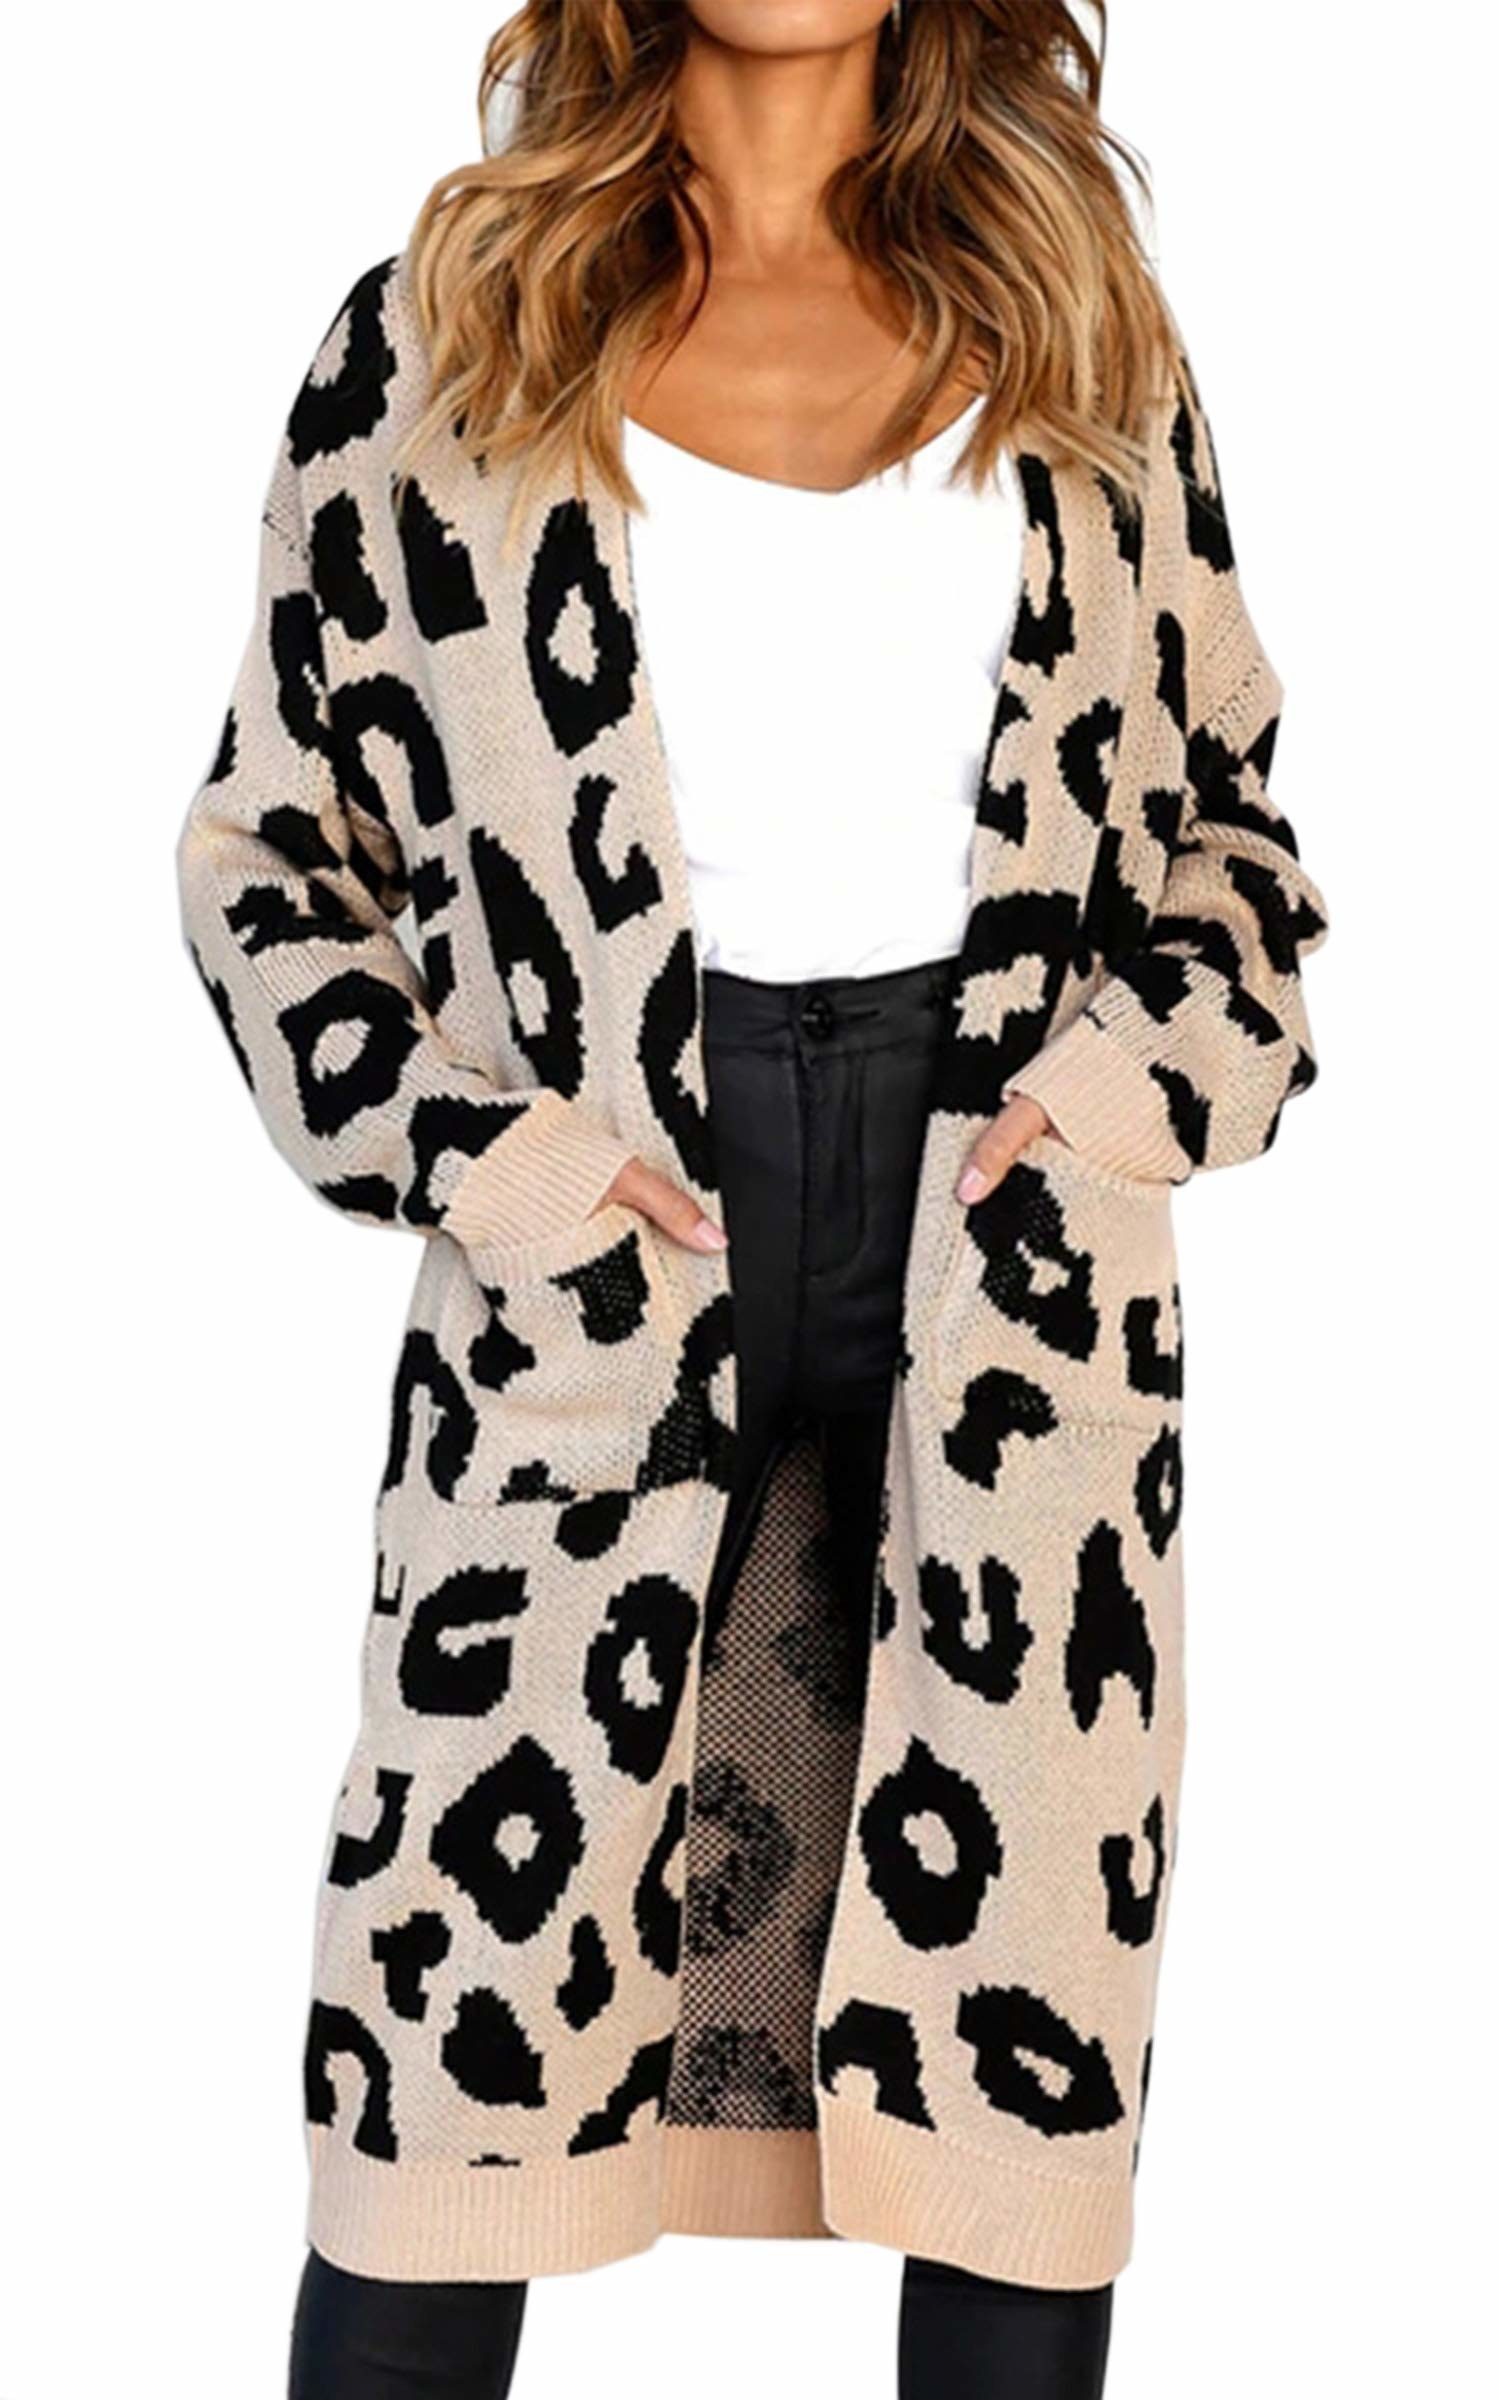 e0efbac2a840 4. A leopard-print knit for days you just feel like soaking up a million  and one compliments about your awesome fashion sense.